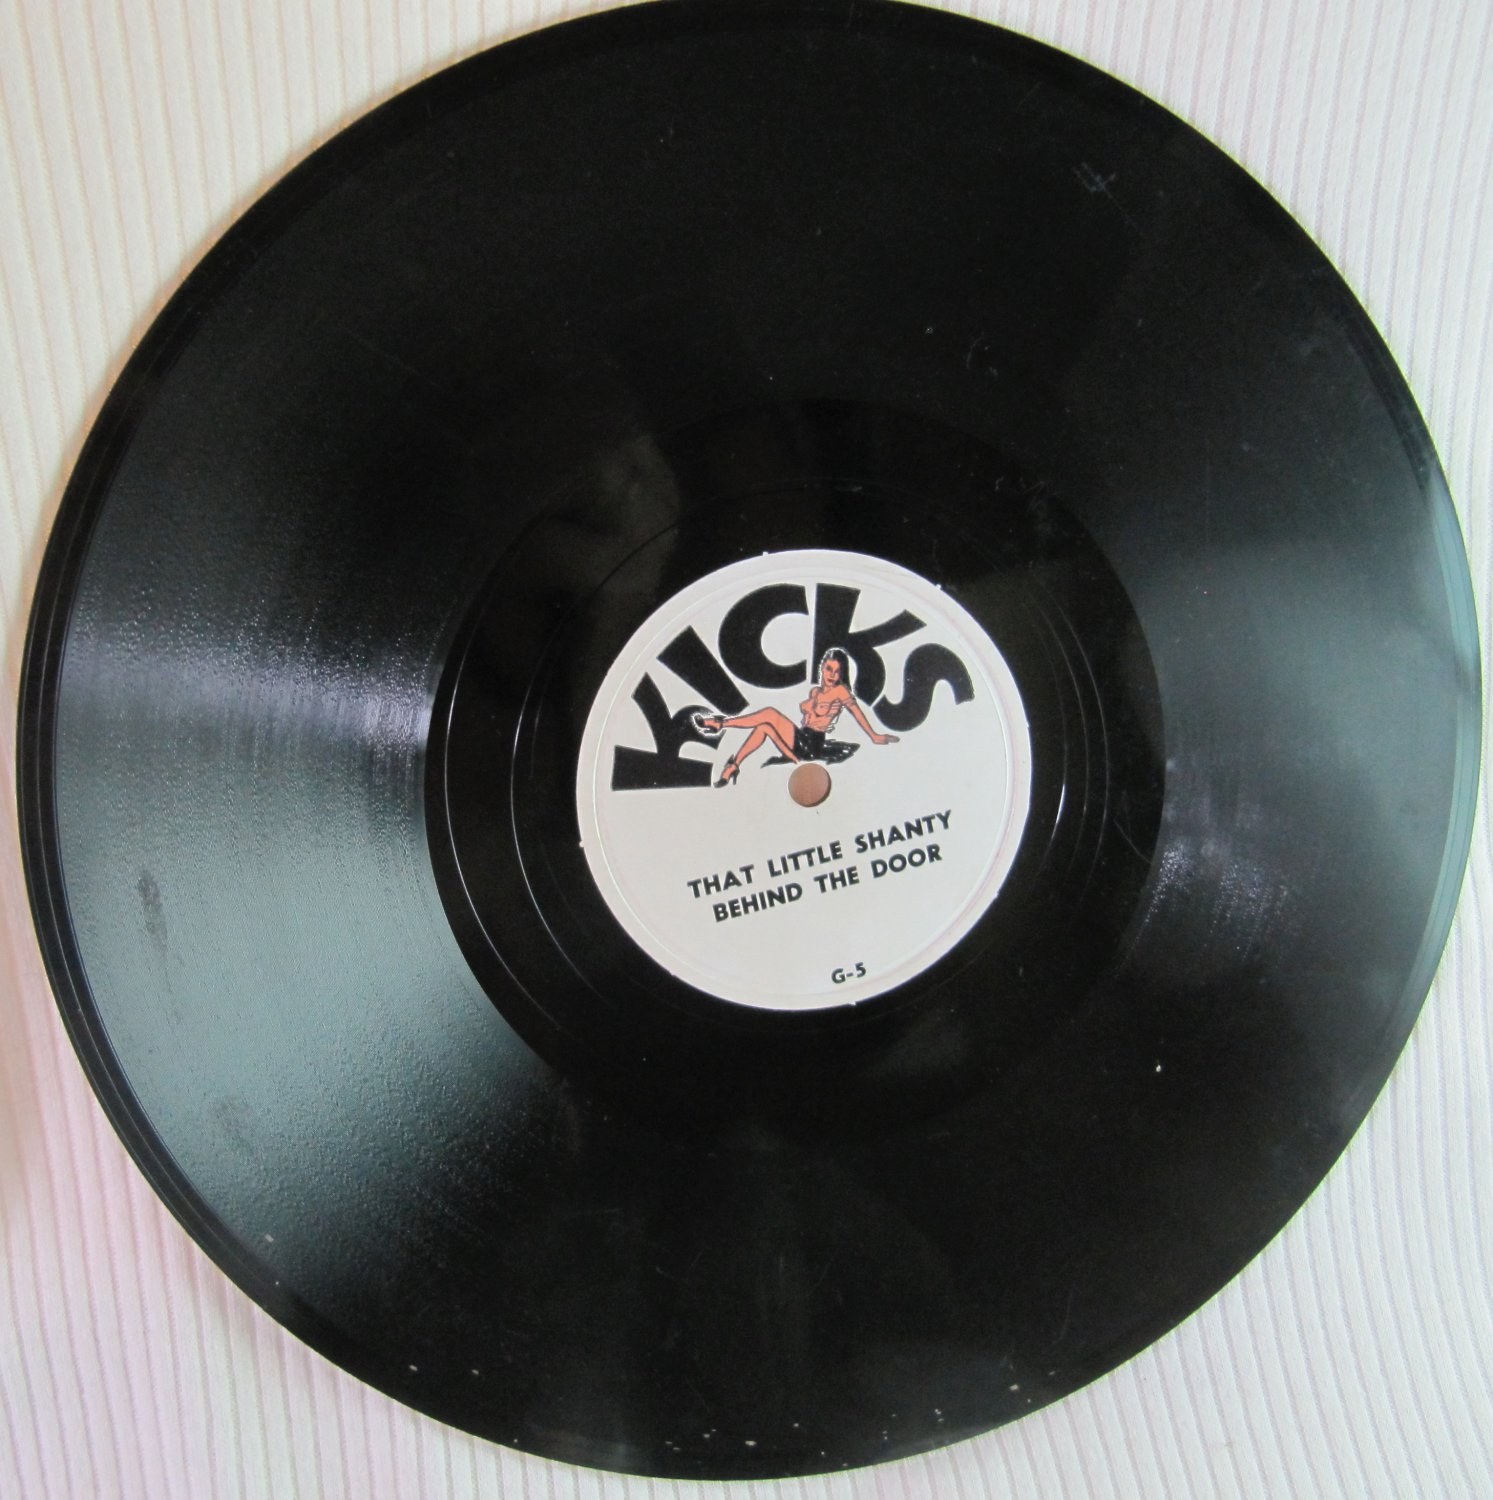 Vintage KICKS 78 RPM Vinyl Record Party Baudy That Little Shanty Gal From Atlantic City